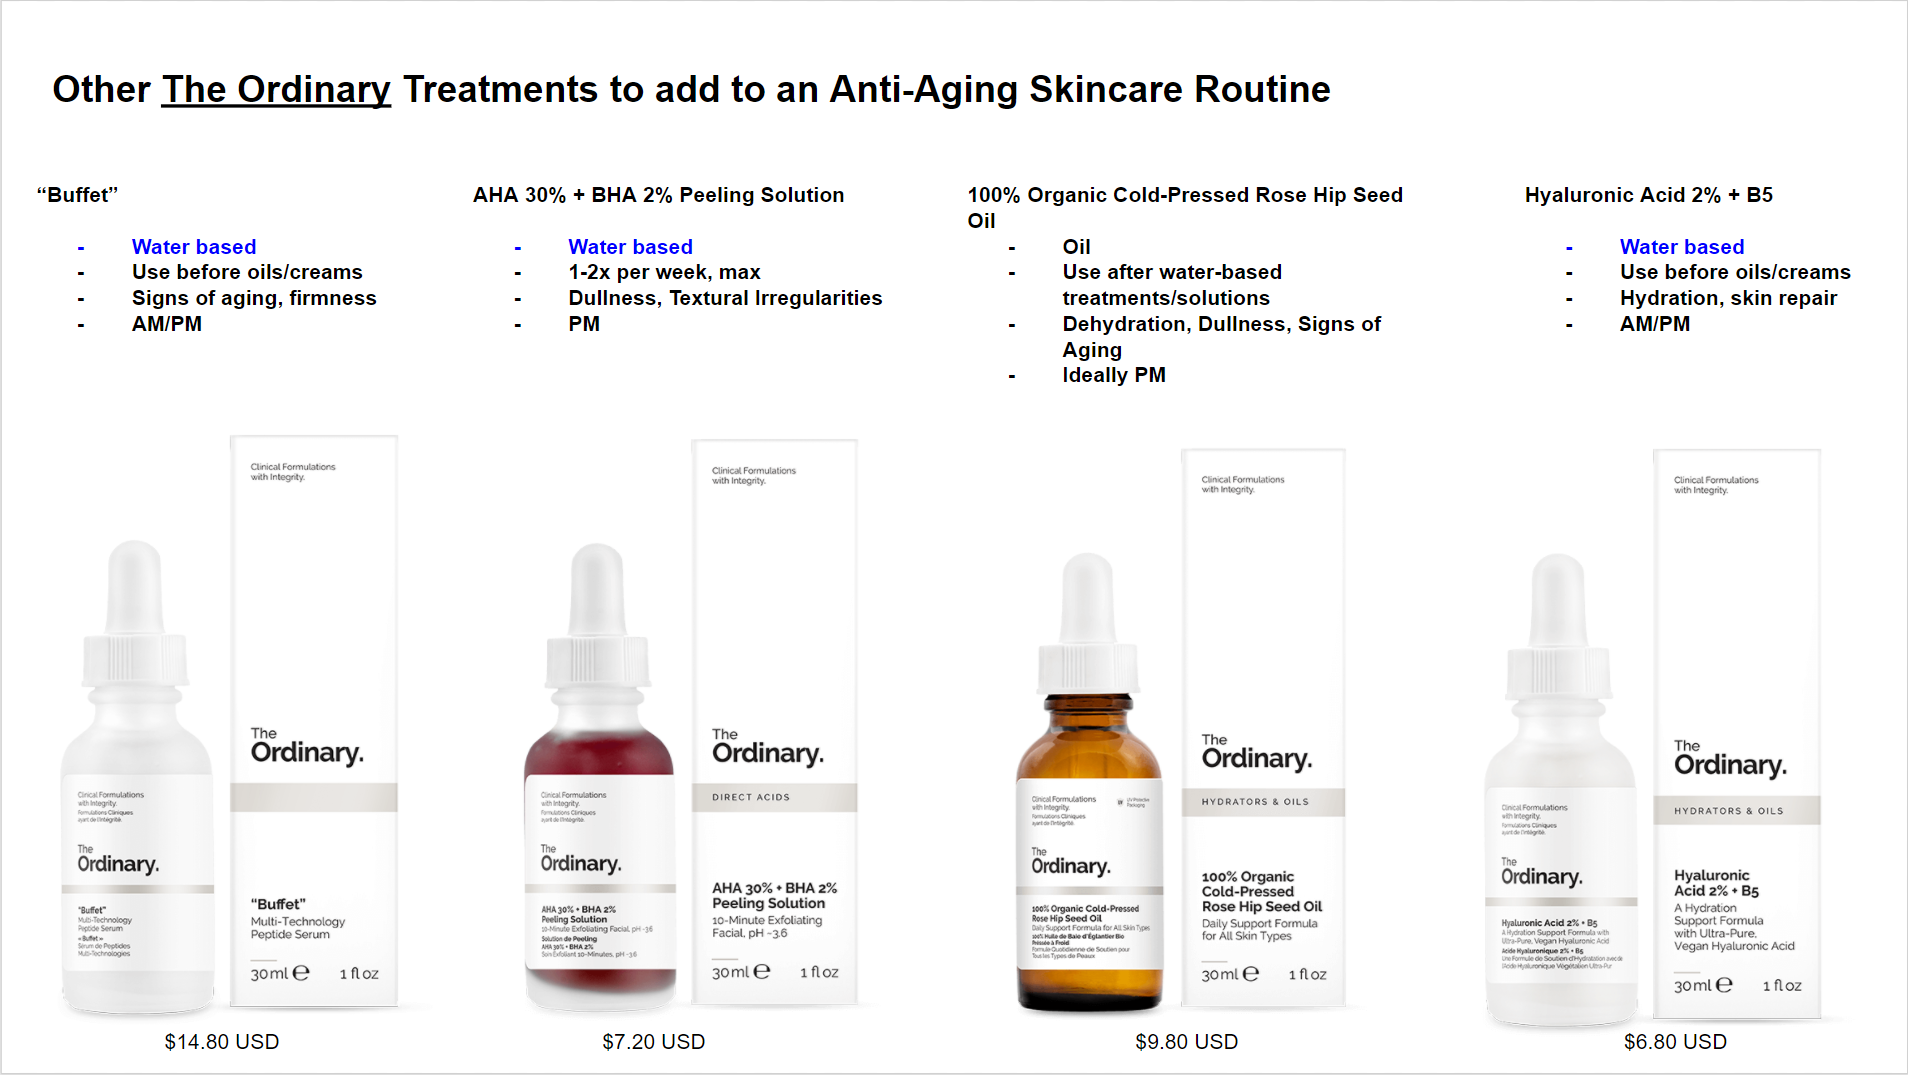 The Ordinary Shopping Guide - For Anti Aging Skincare